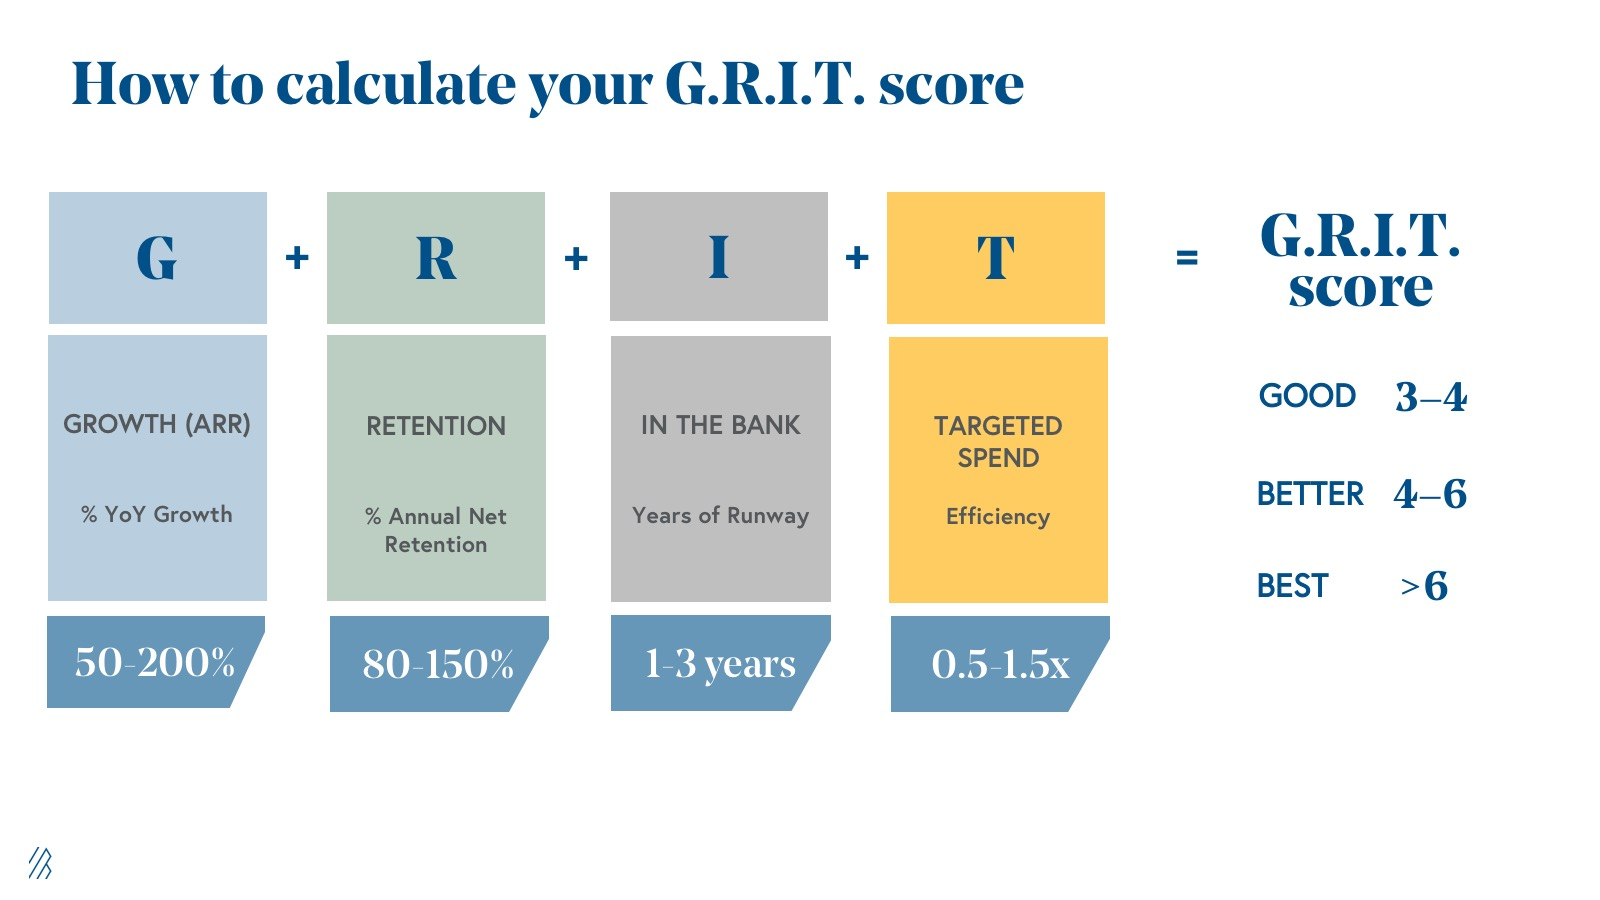 G.R.I.T. framework and equation